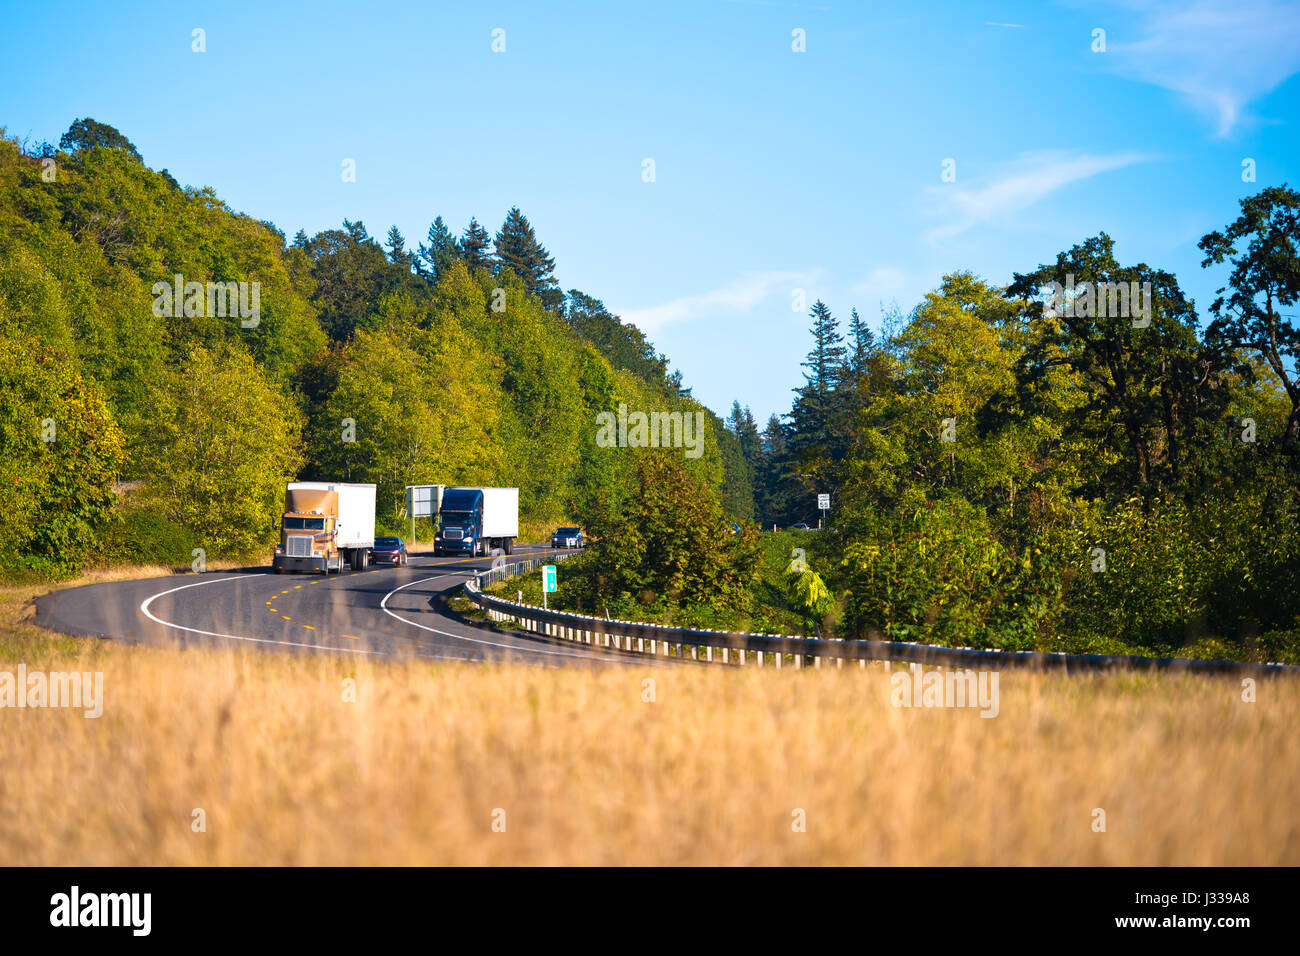 Two large rigs semi-trucks with trailers surrounded by cars at the turn winding road surrounded by green trees with - Stock Image